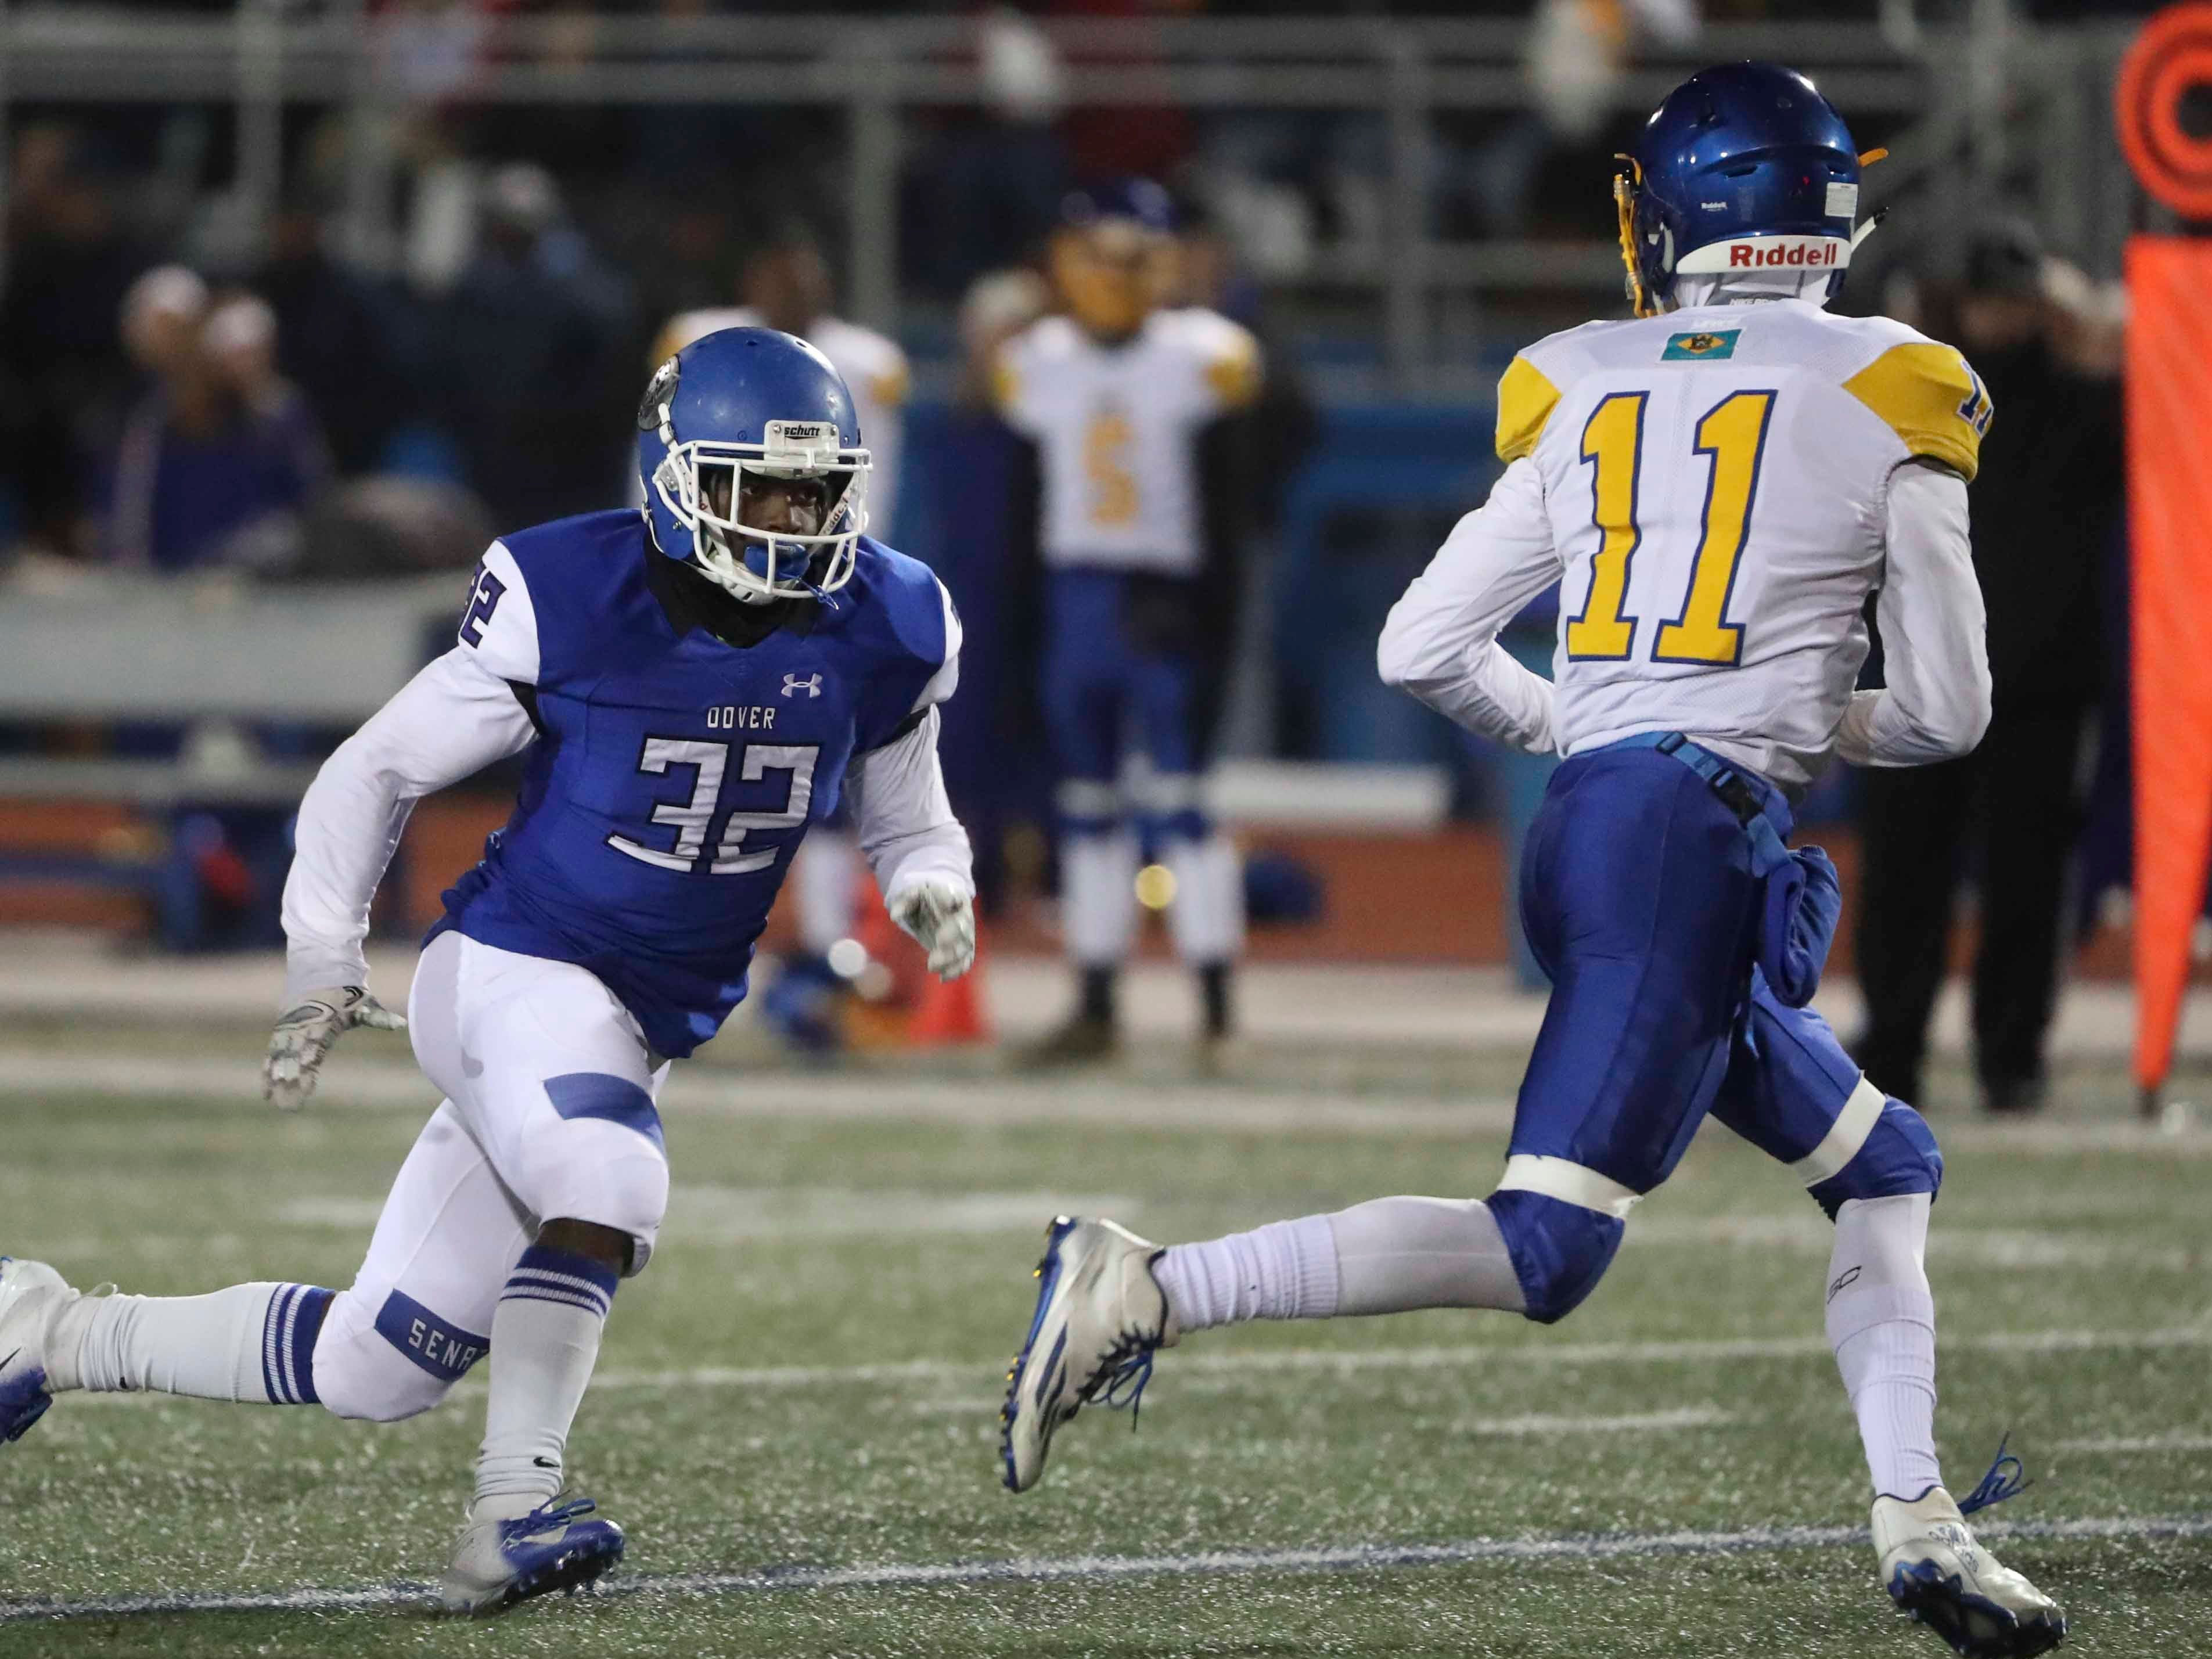 Dover's David Exum targets Sussex Central quarterback Isaac Barnes in the second  quarter of Sussex Central's 21-20 win at Dover High School Friday in a DIAA Division I state high school tournament semifinal.